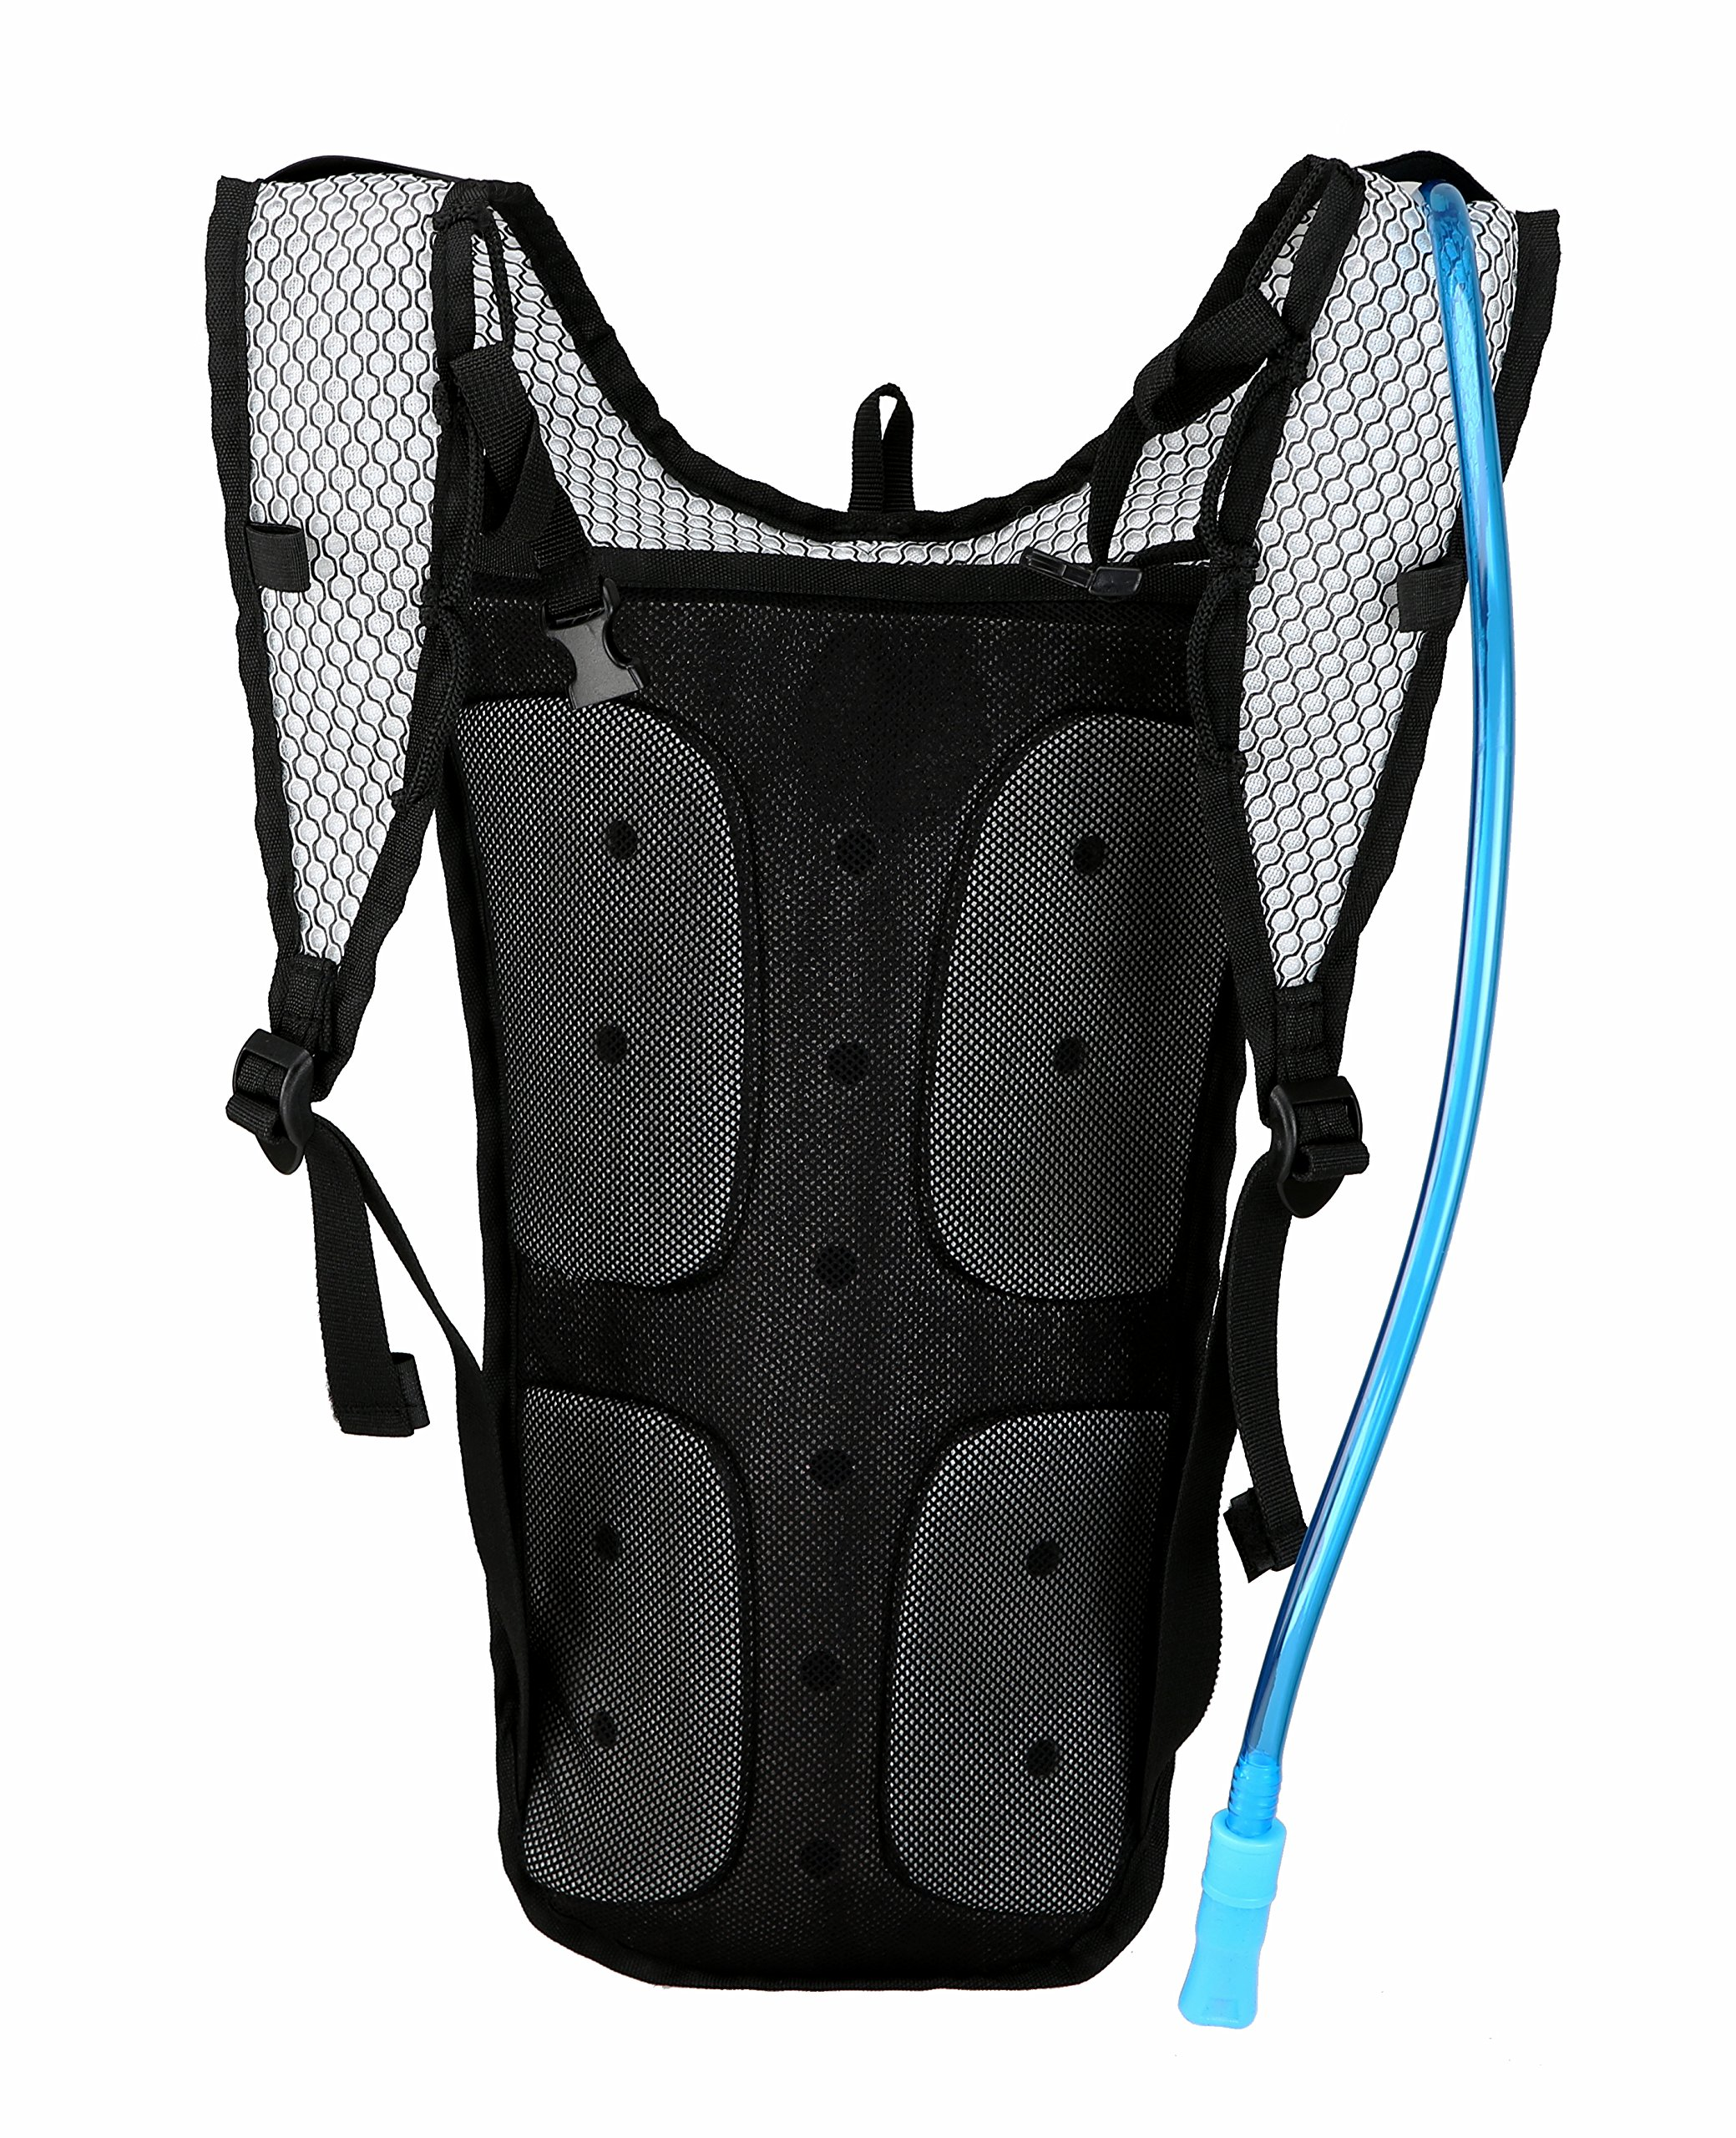 Roswheel 15937 Hydration Backpack with 2 L BPA Free Water Bladder, Green by Roswheel (Image #2)